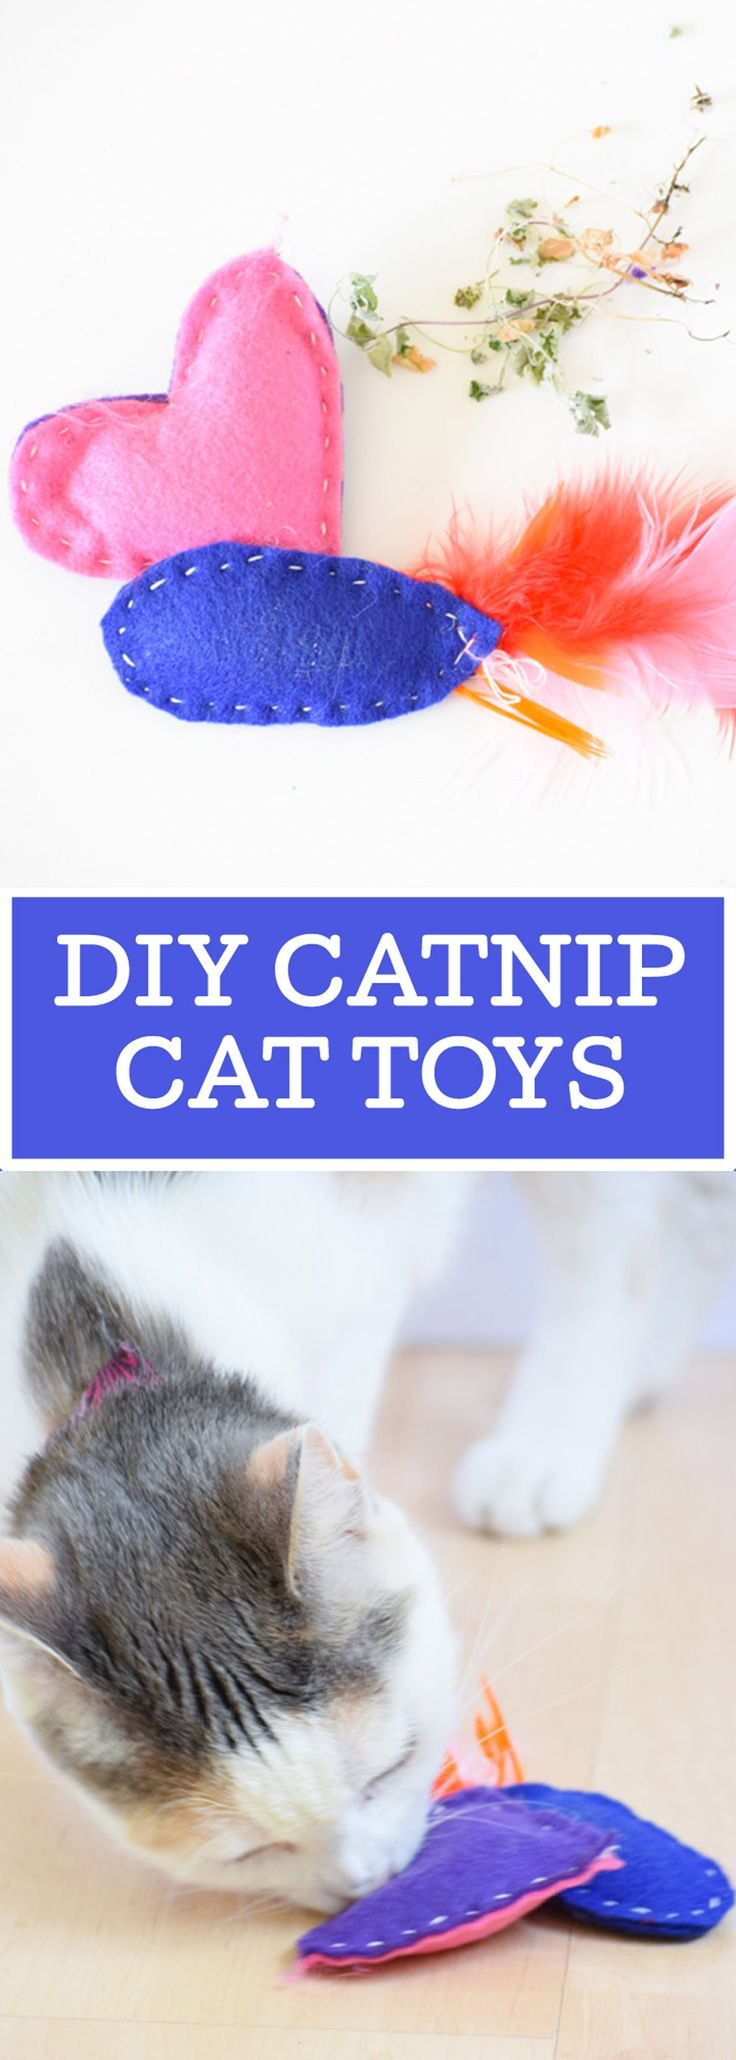 DIY Catnip Cat Toys are easy to make and irresistible for your favorite feline! #ad #catslovenutrish